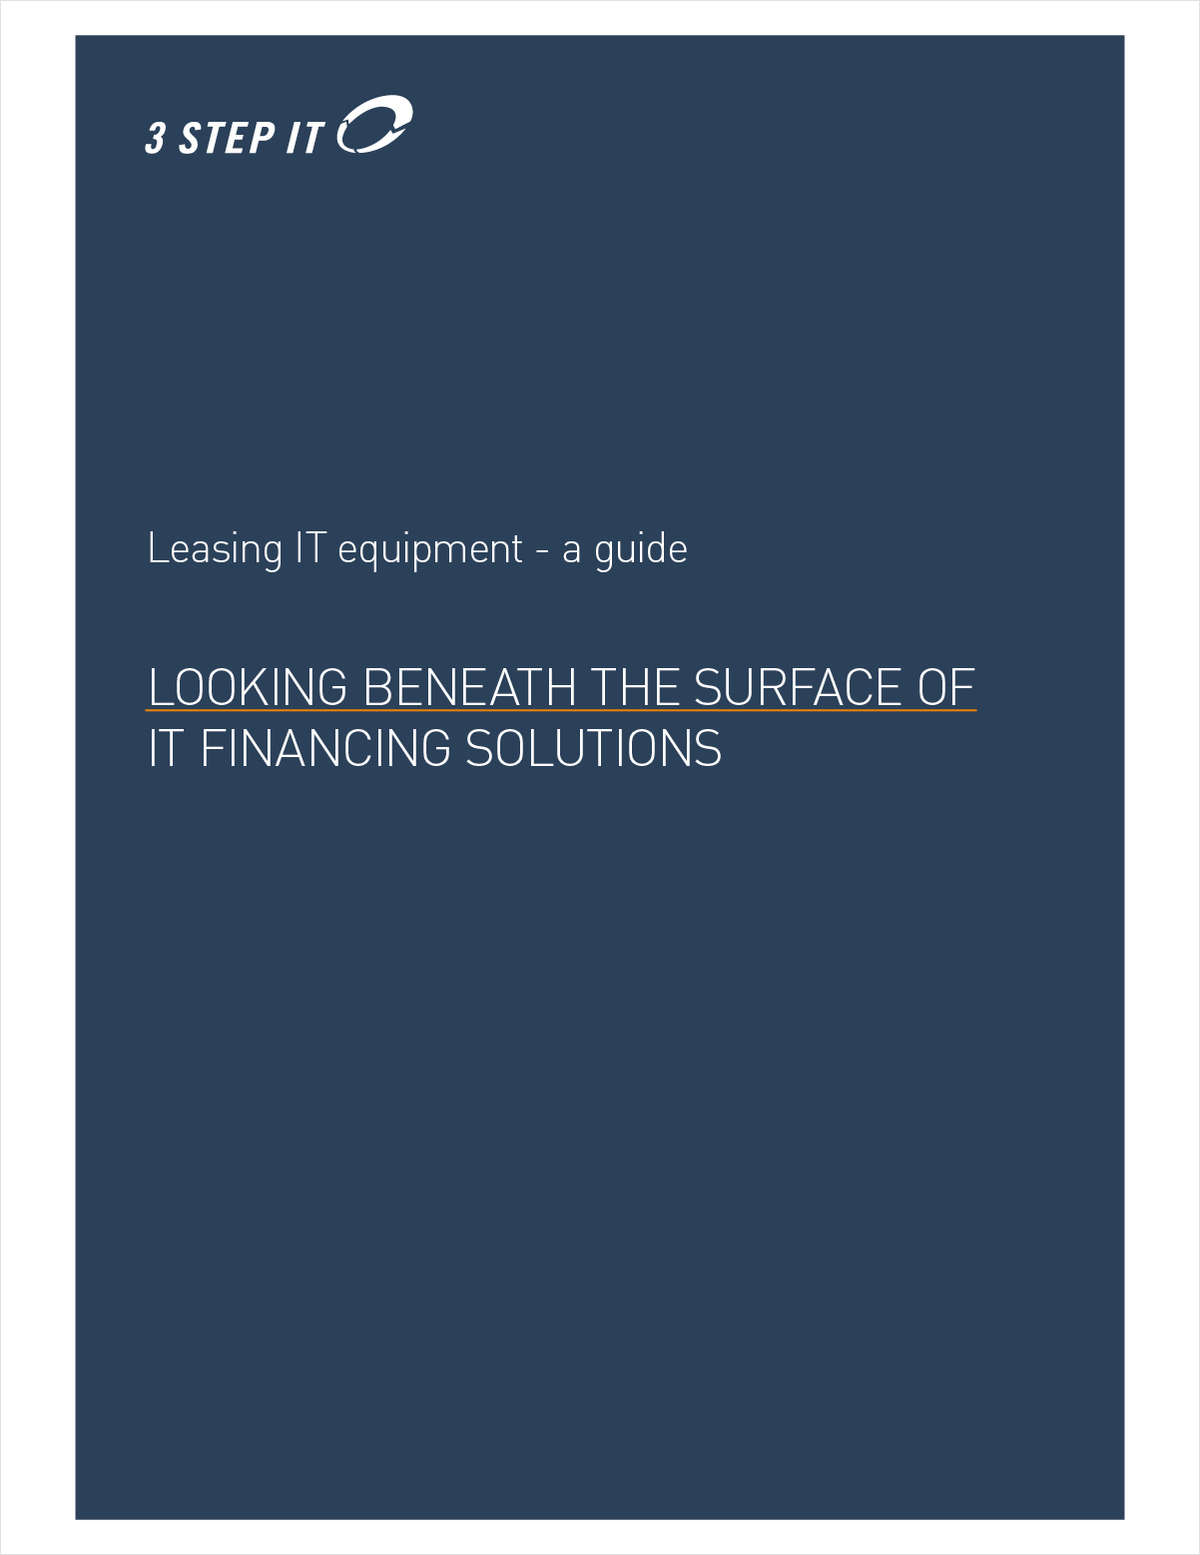 A Guide to Leasing IT Equipment - Looking Beneath the Surface of IT Financing Solutions.